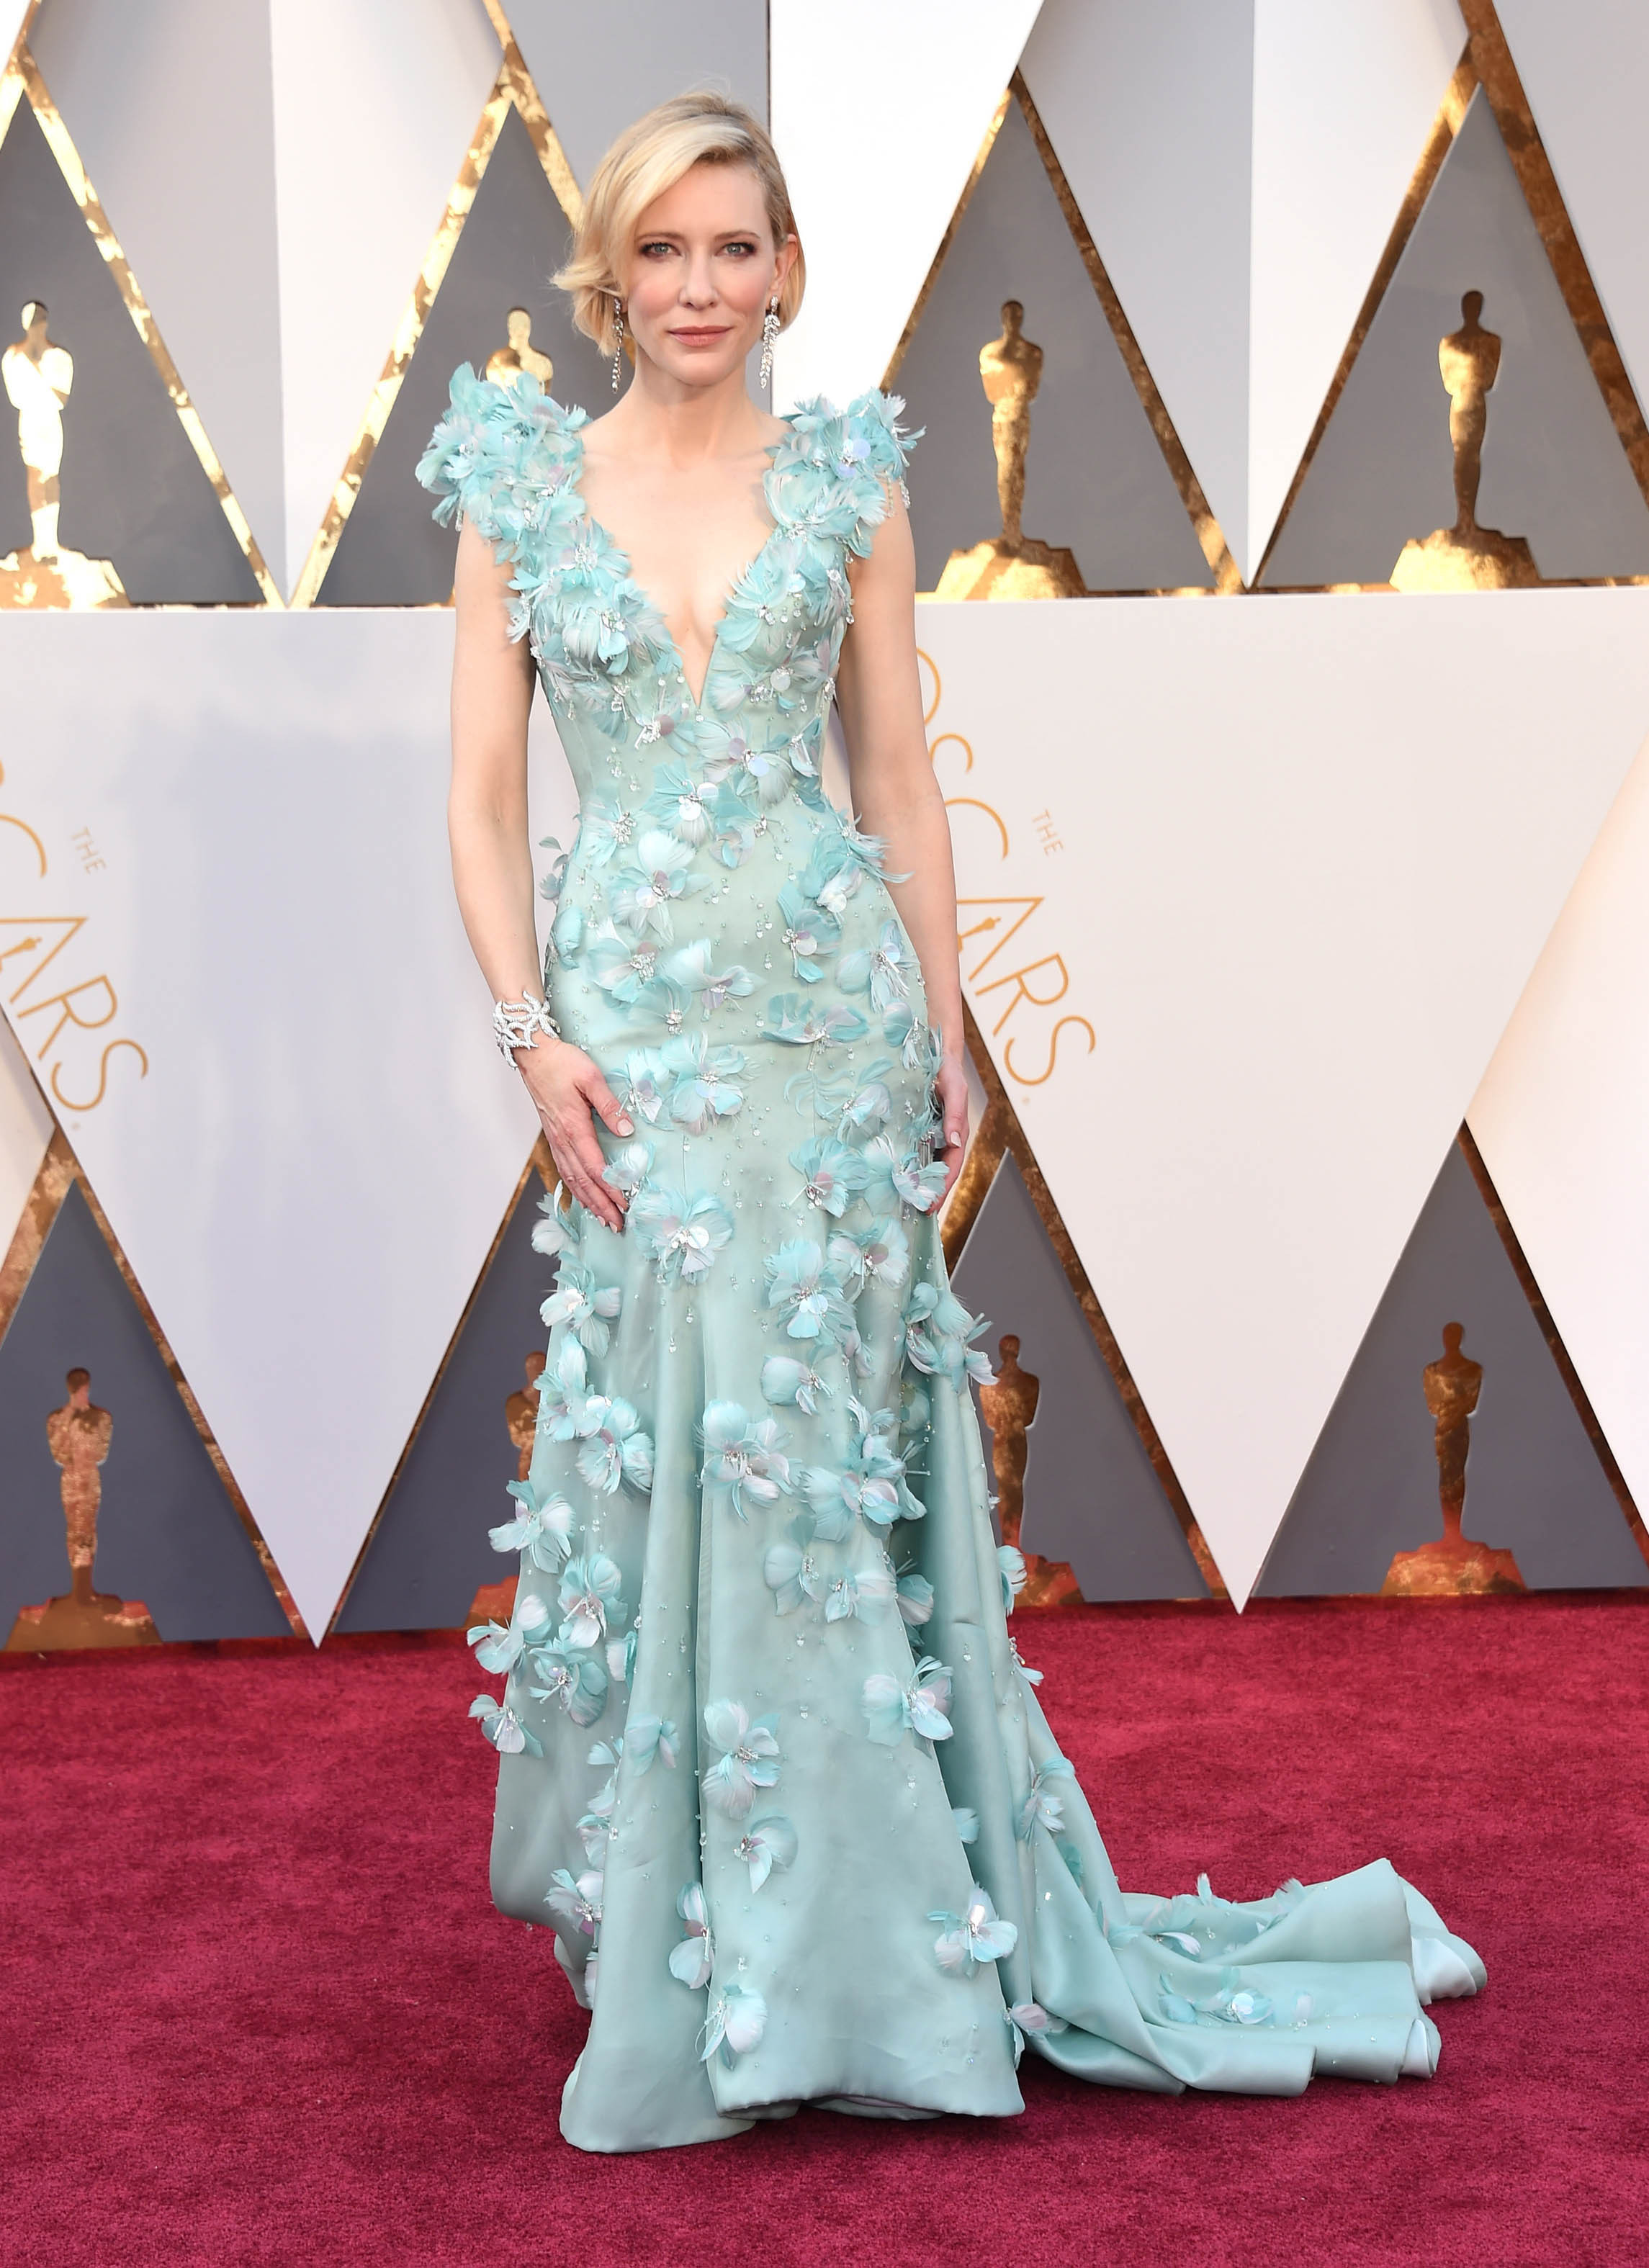 Photo by: KGC-11/starmaxinc.com STAR MAX Copyright 2016 ALL RIGHTS RESERVED Telephone/Fax: (212) 995-1196 2/28/16 Cate Blanchett at the 88th Annual Academy Awards (Oscars). (Hollywood, CA, USA)